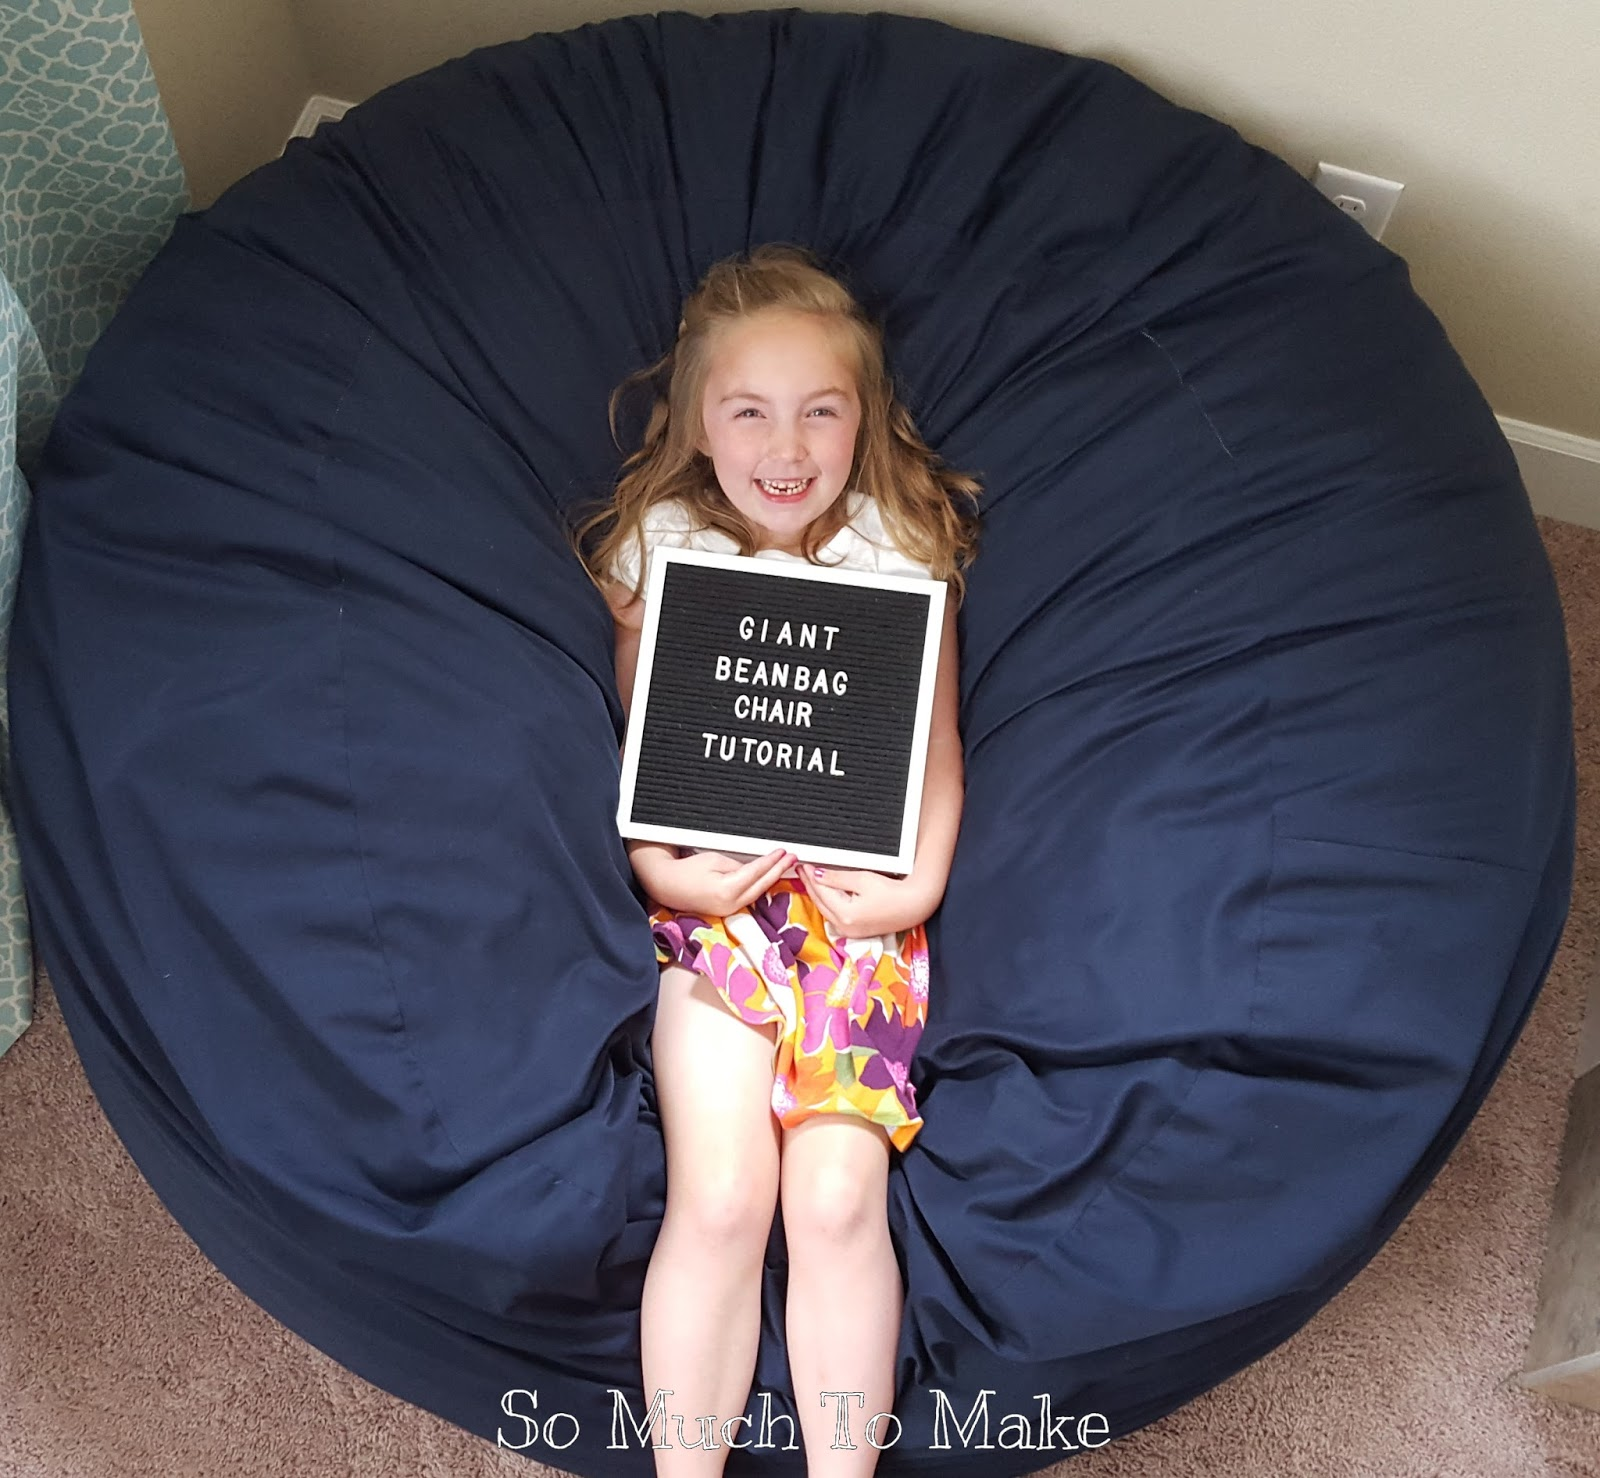 Bean Bag Chair Cost Best Gaming Office Giant Tutorial So Much To Make Making Your Own Is The Way Go These Comfy Foam Filled Chairs Upwards Of 300 Buy New And By One Yourself